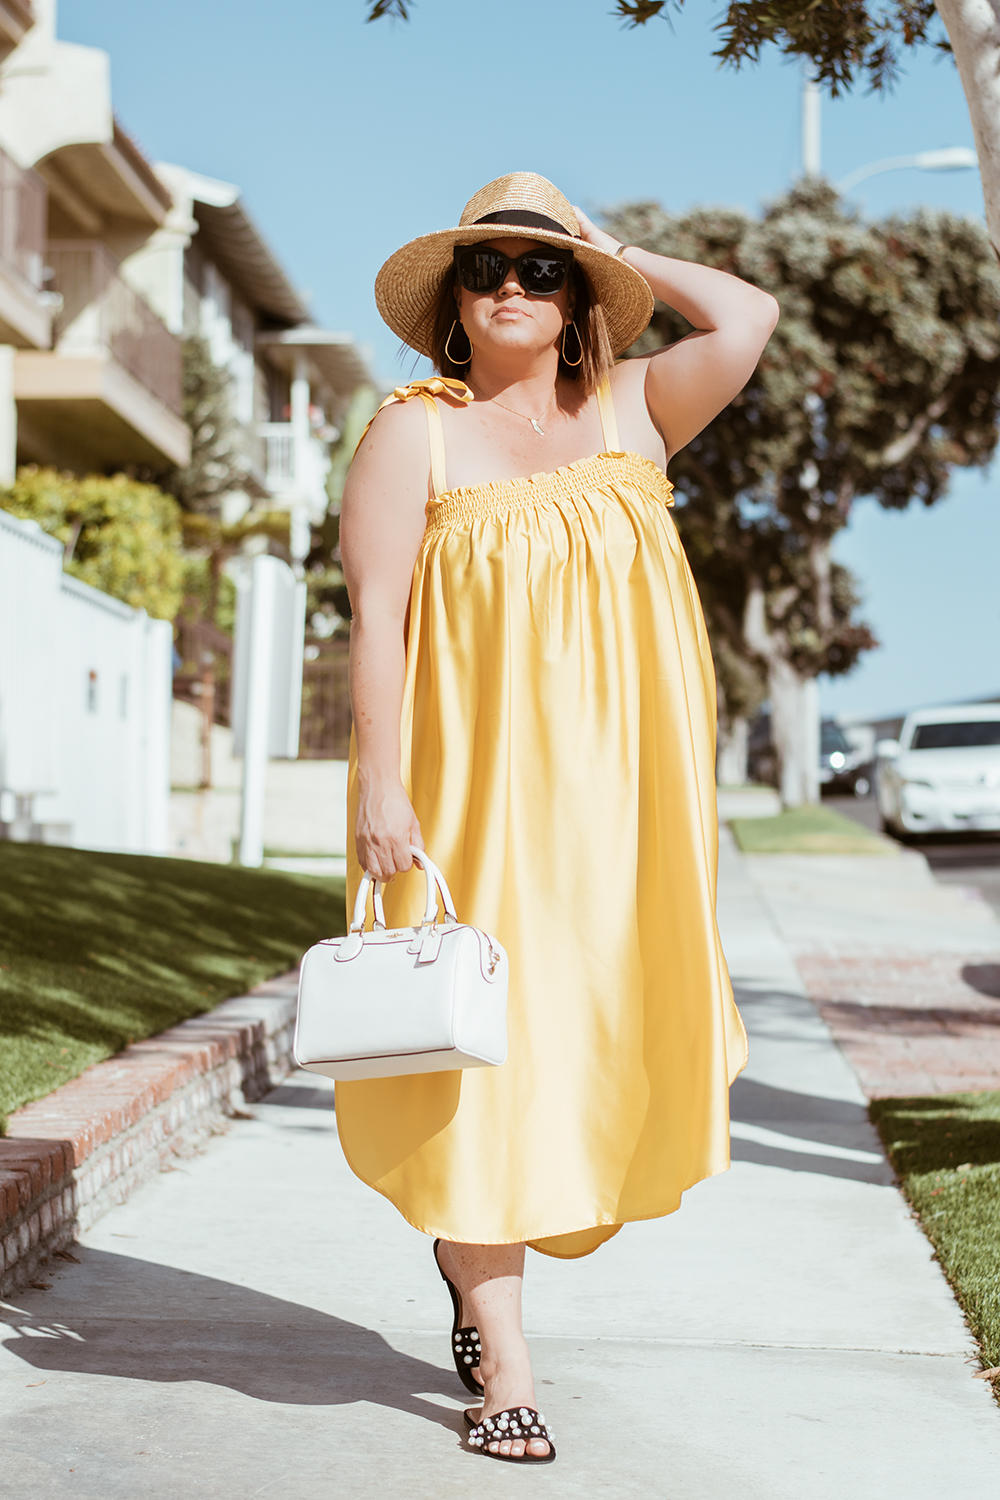 The Best Yellow Dresses for Summer The Biggest Trends for 2018 Barefoot in LA Fashion Blog Style Ideas Outfits 0071